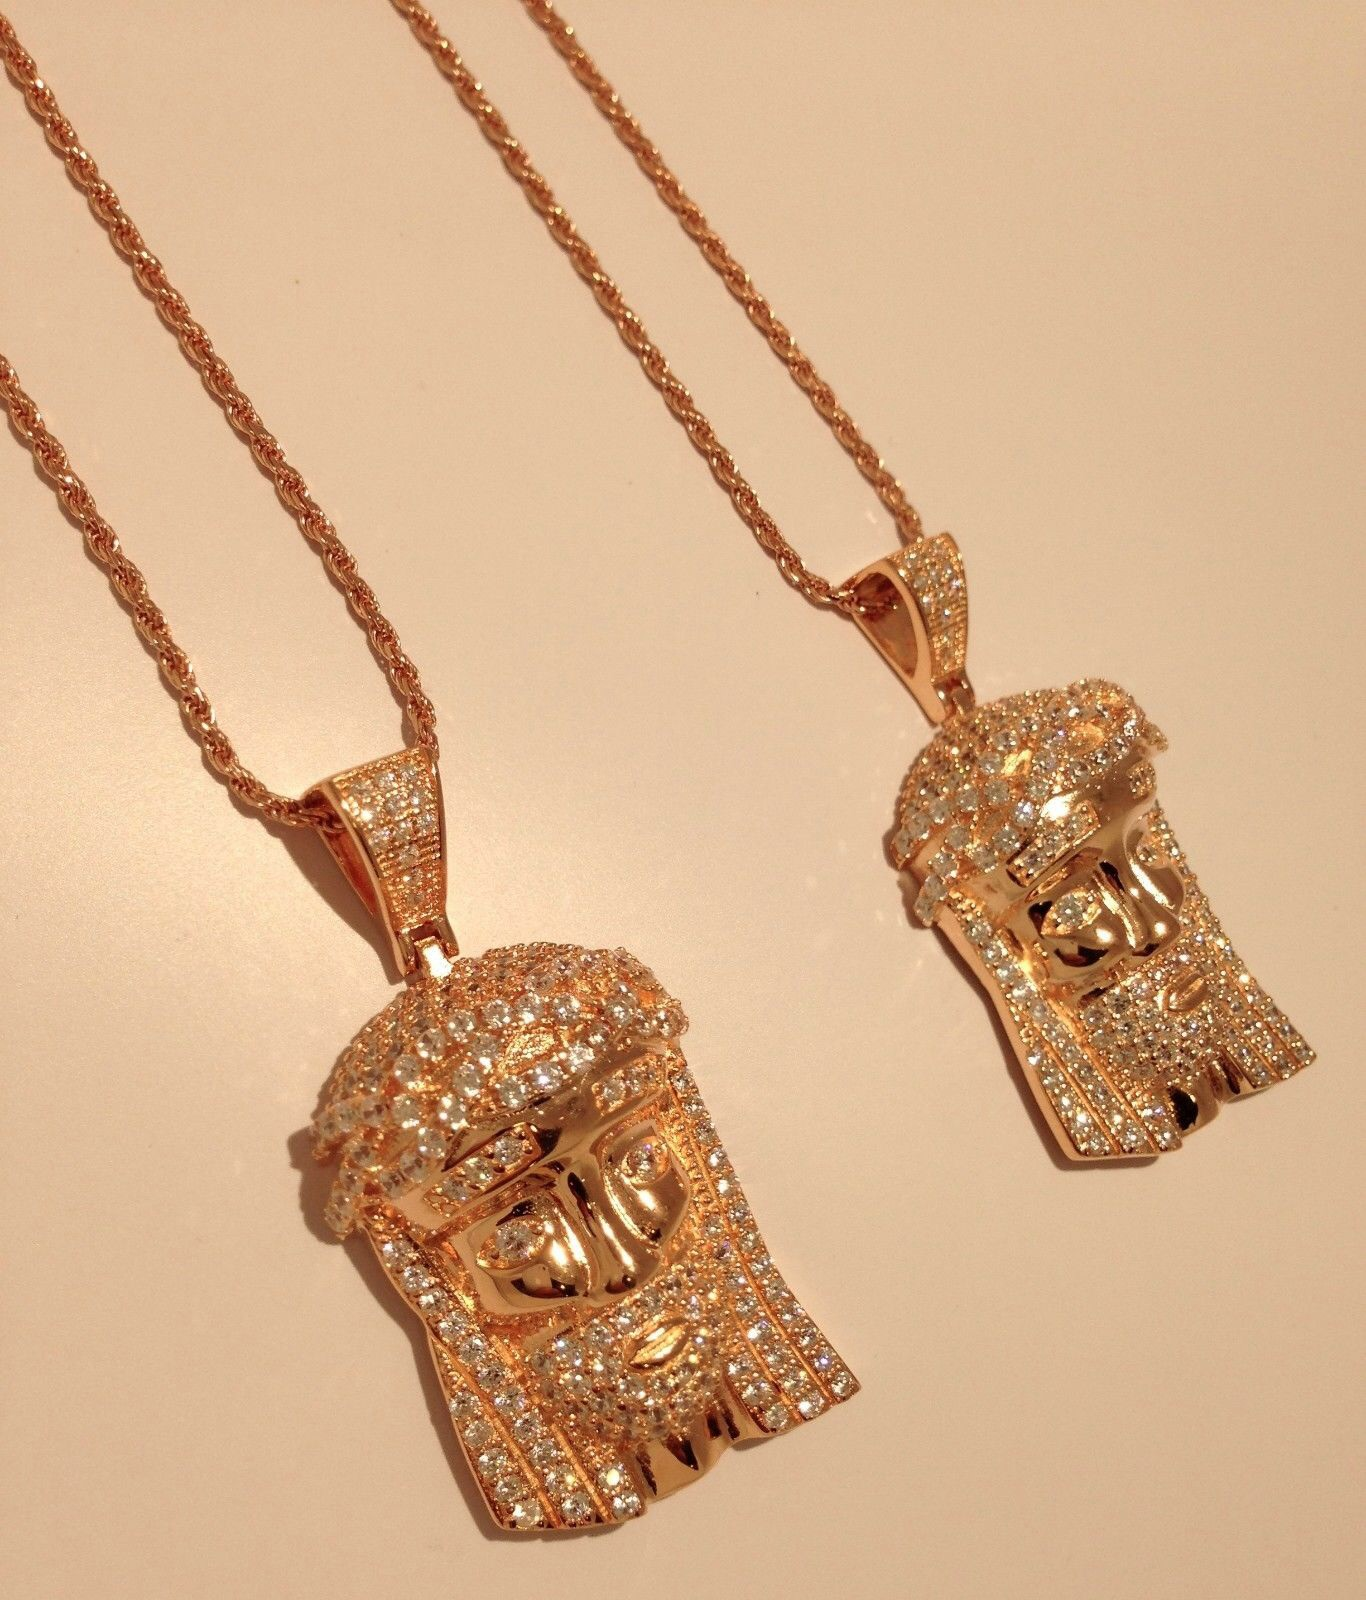 2x iced custom jesus piece w 30 rope chain dia cut 14k rose gold 2x iced custom jesus piece w 30 rope chain dia cut 14k rose gold aloadofball Choice Image